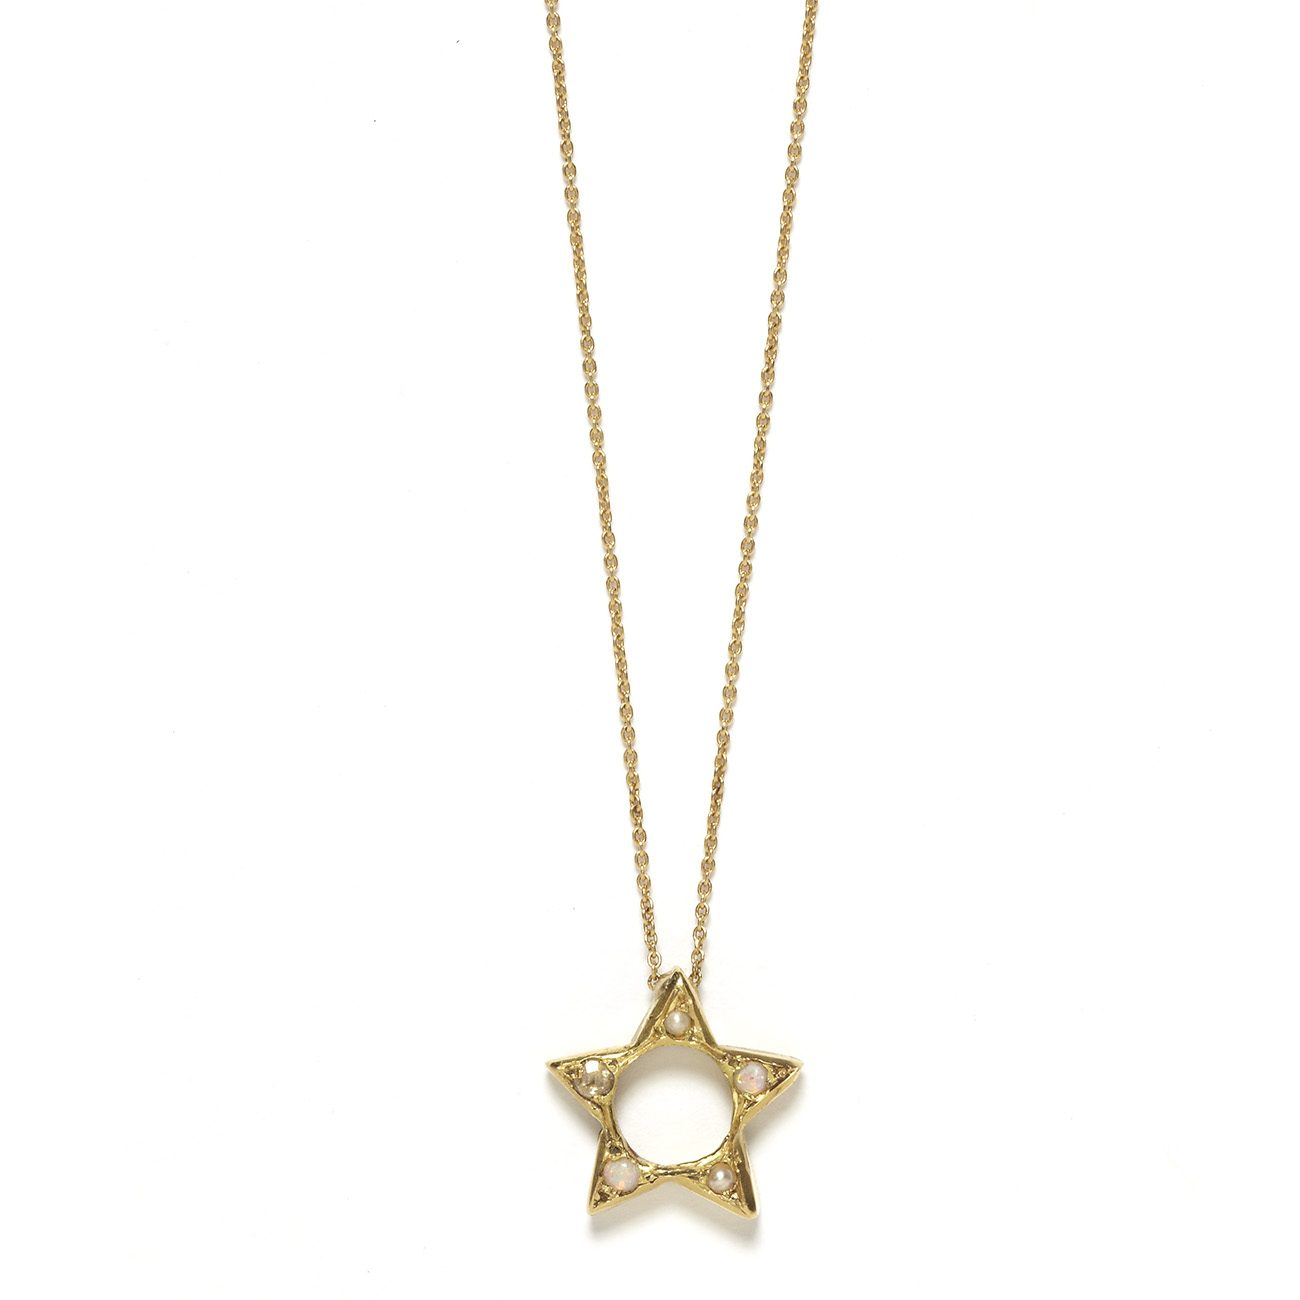 Elisa Solomon - Yellow Gold Star Necklace